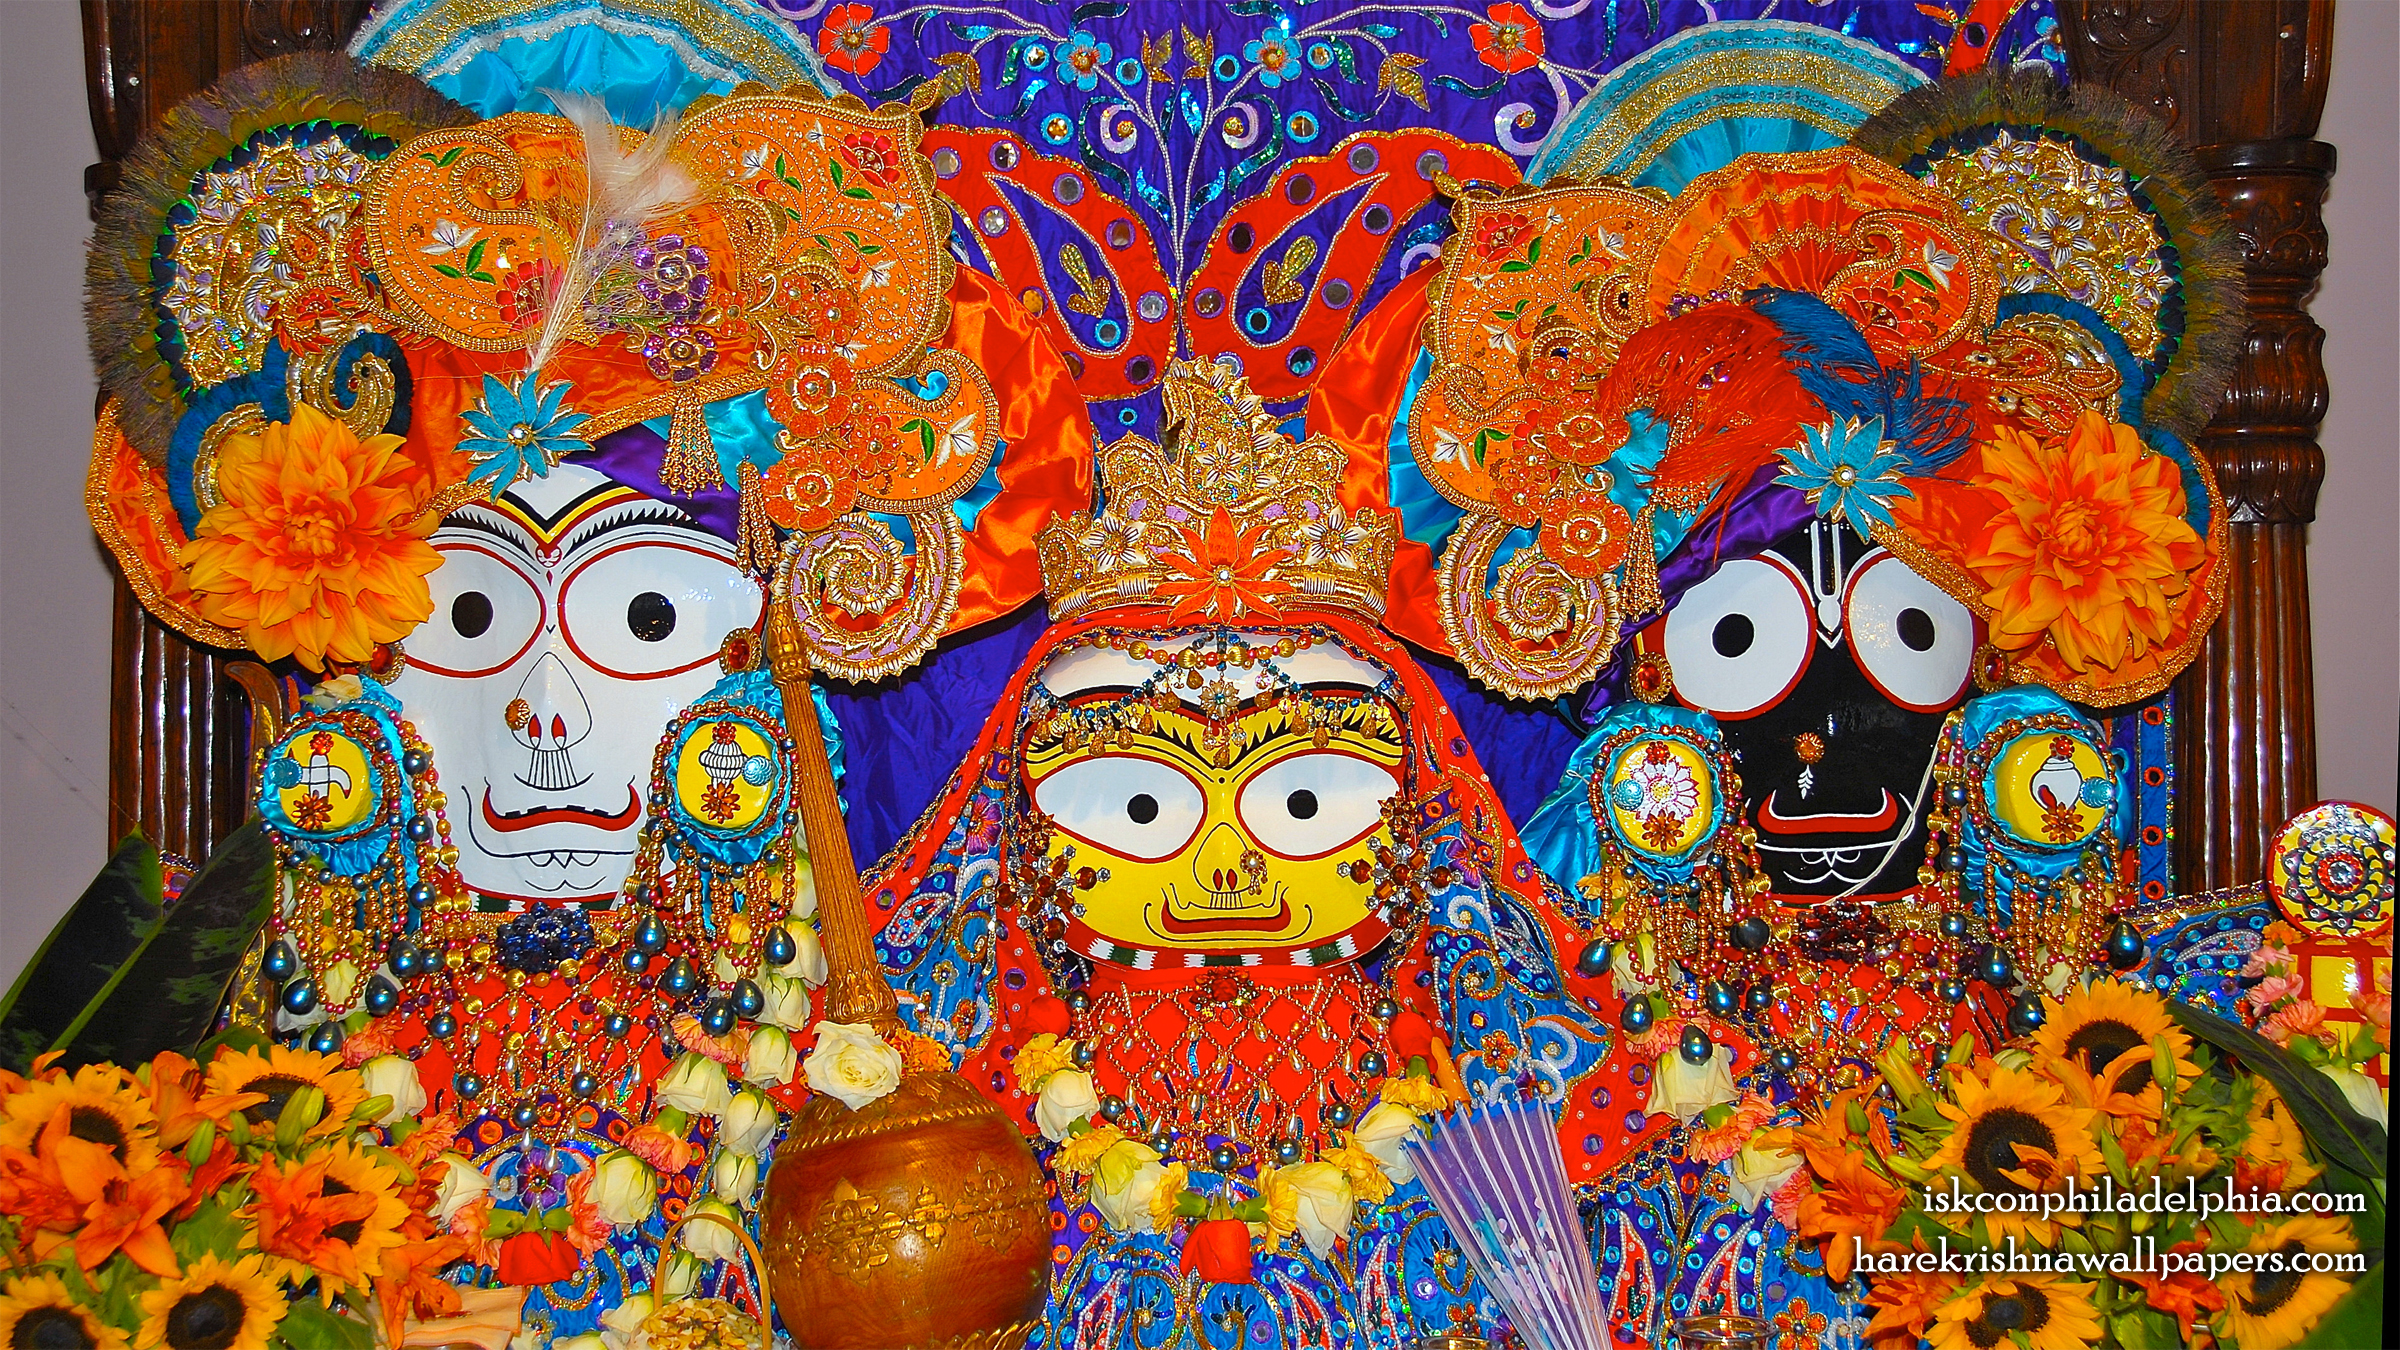 Jagannath Baladeva Subhadra Wallpaper (010) Size 2400x1350 Download